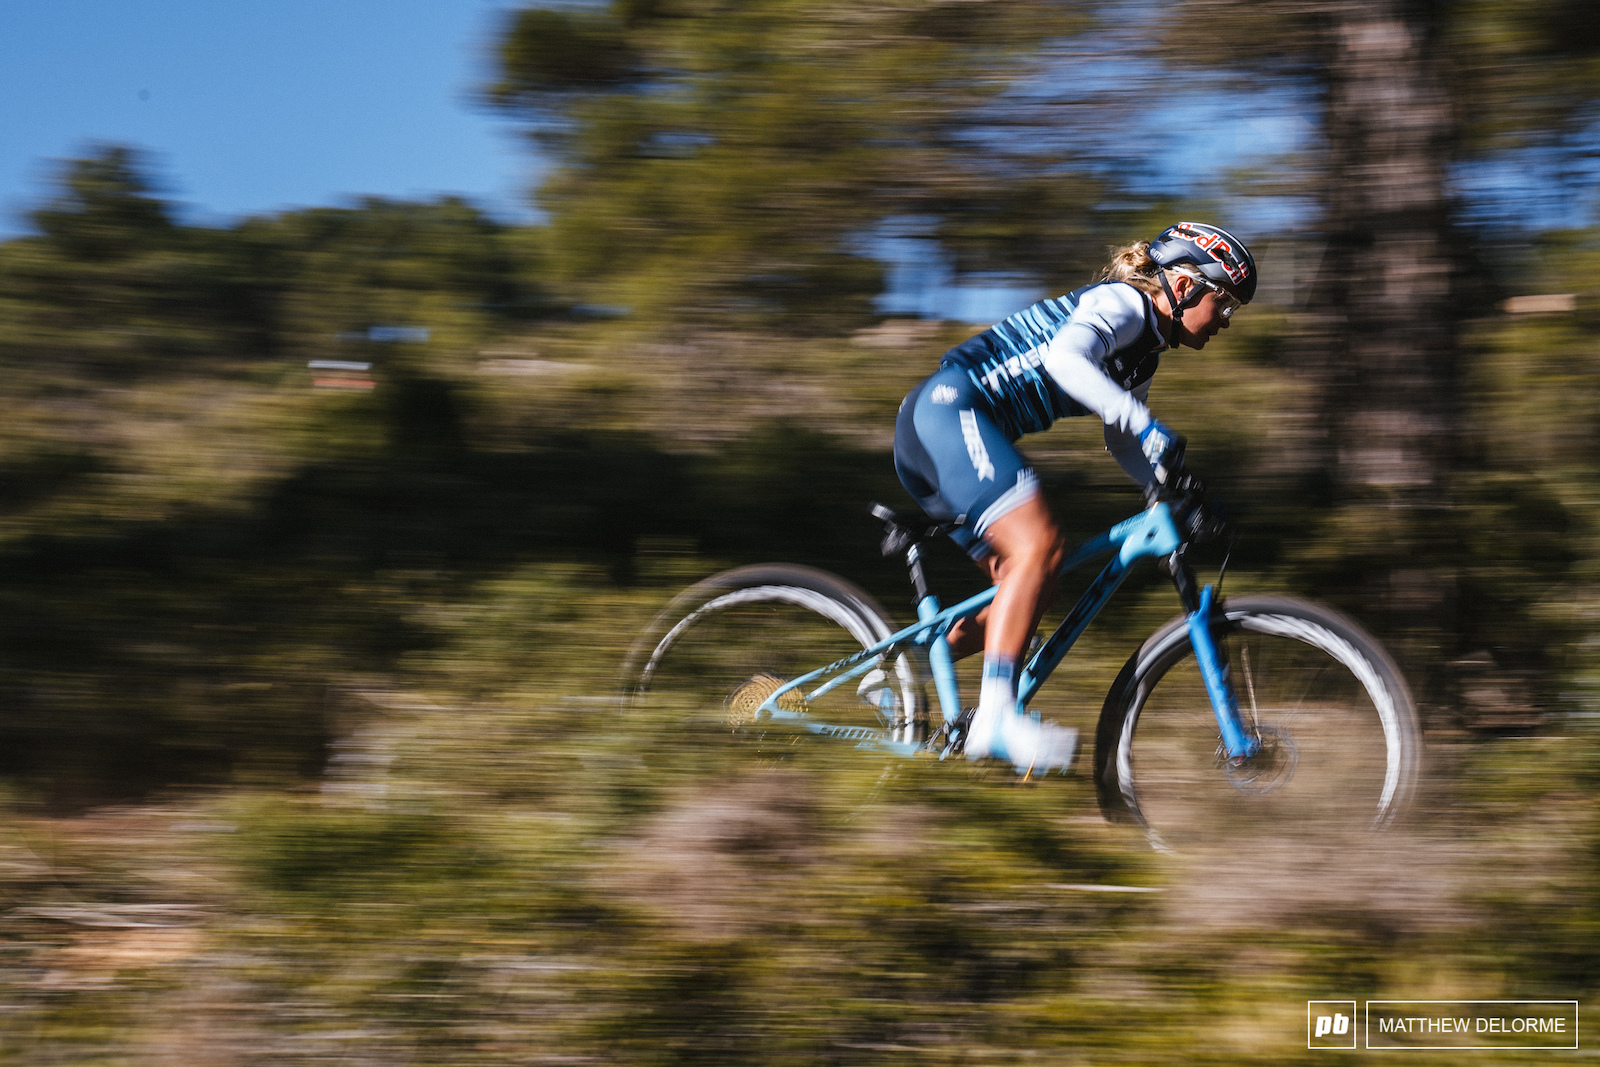 Emily Batty speeds through the Spanish pines.